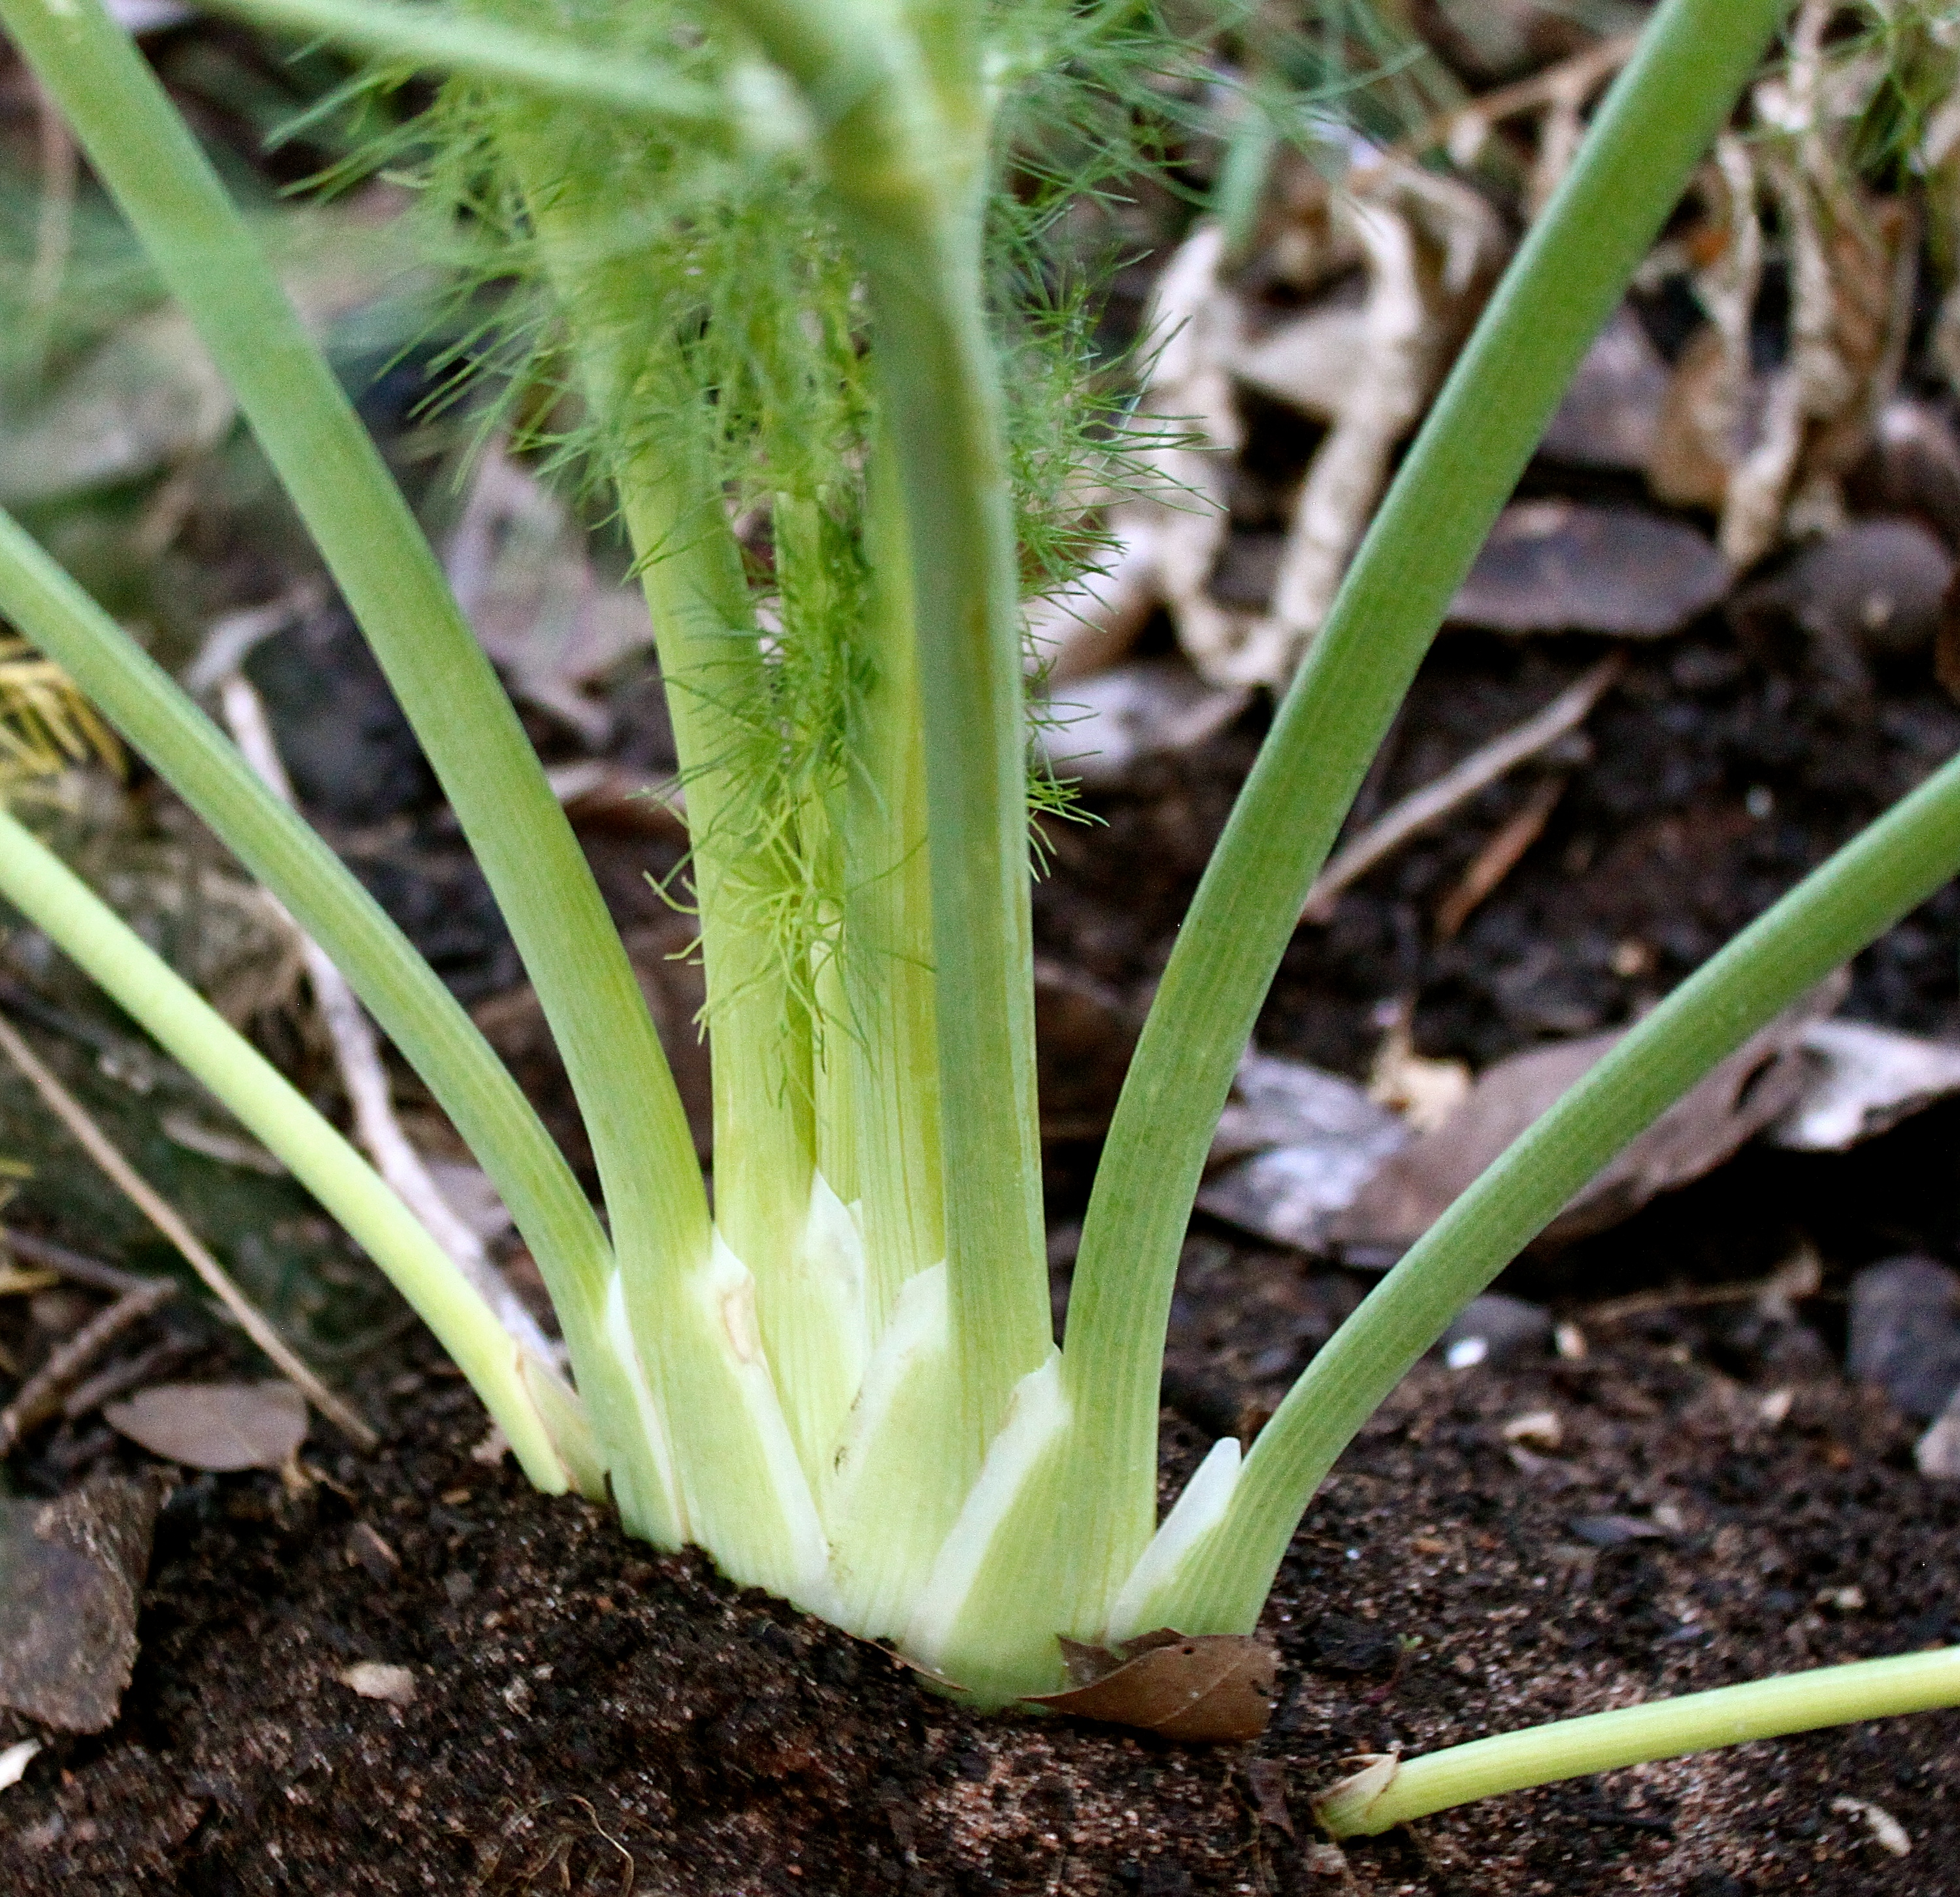 Fennel bulb, which I use in so many of my salads.